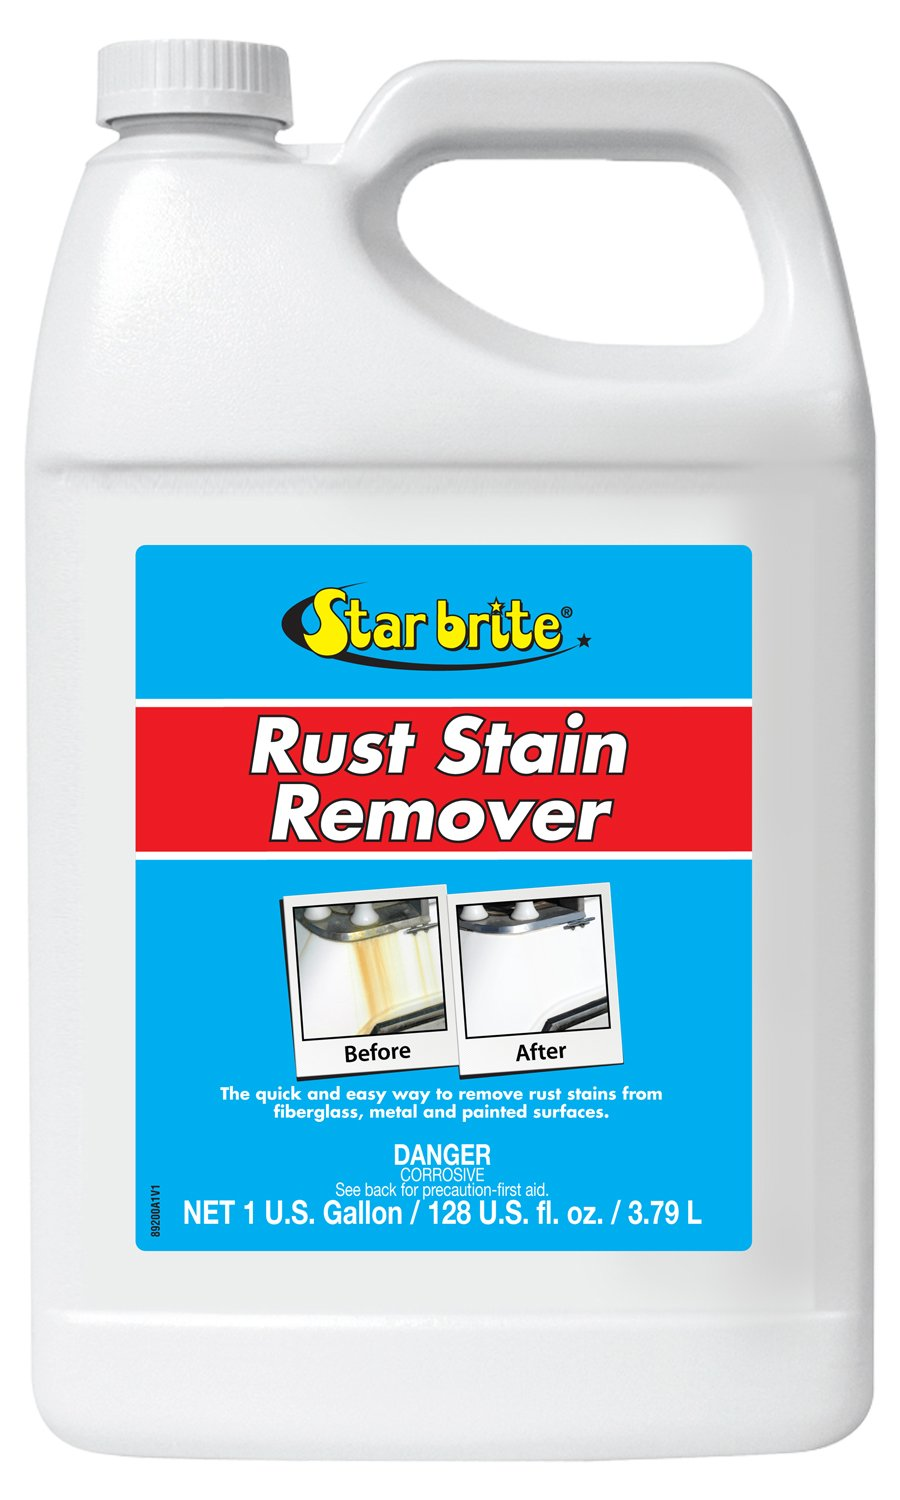 Star brite Rust Stain Remover - Easily Clean Corrosion Stains Off Fiberglass, Vinyl, Metal & Painted Surfaces